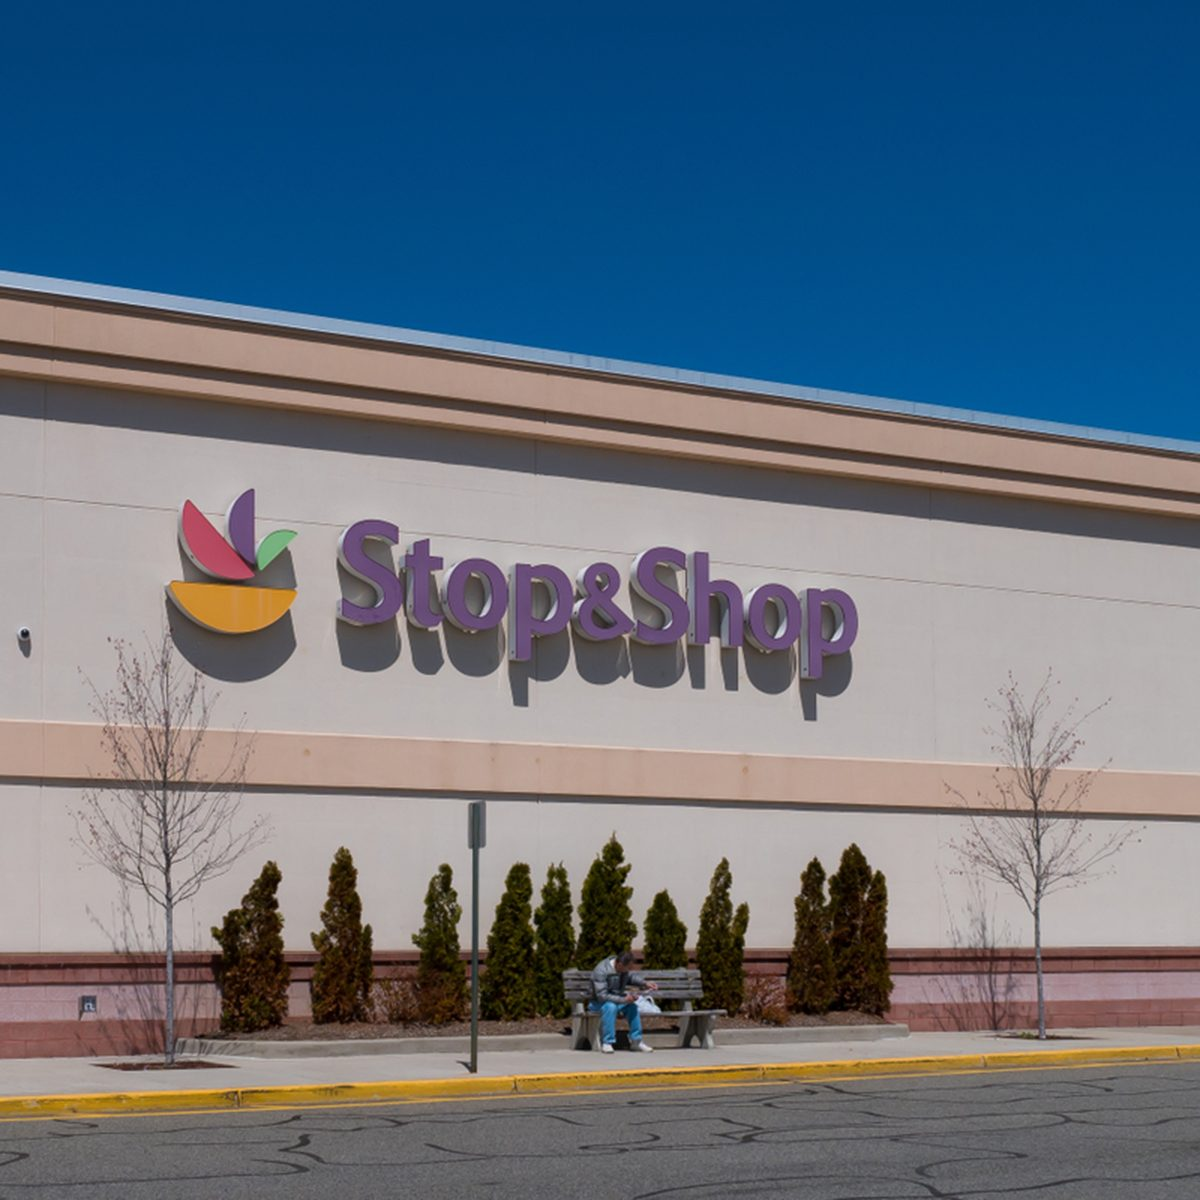 Stop & Shop supermarket on a sunny day with a clear blue sky.